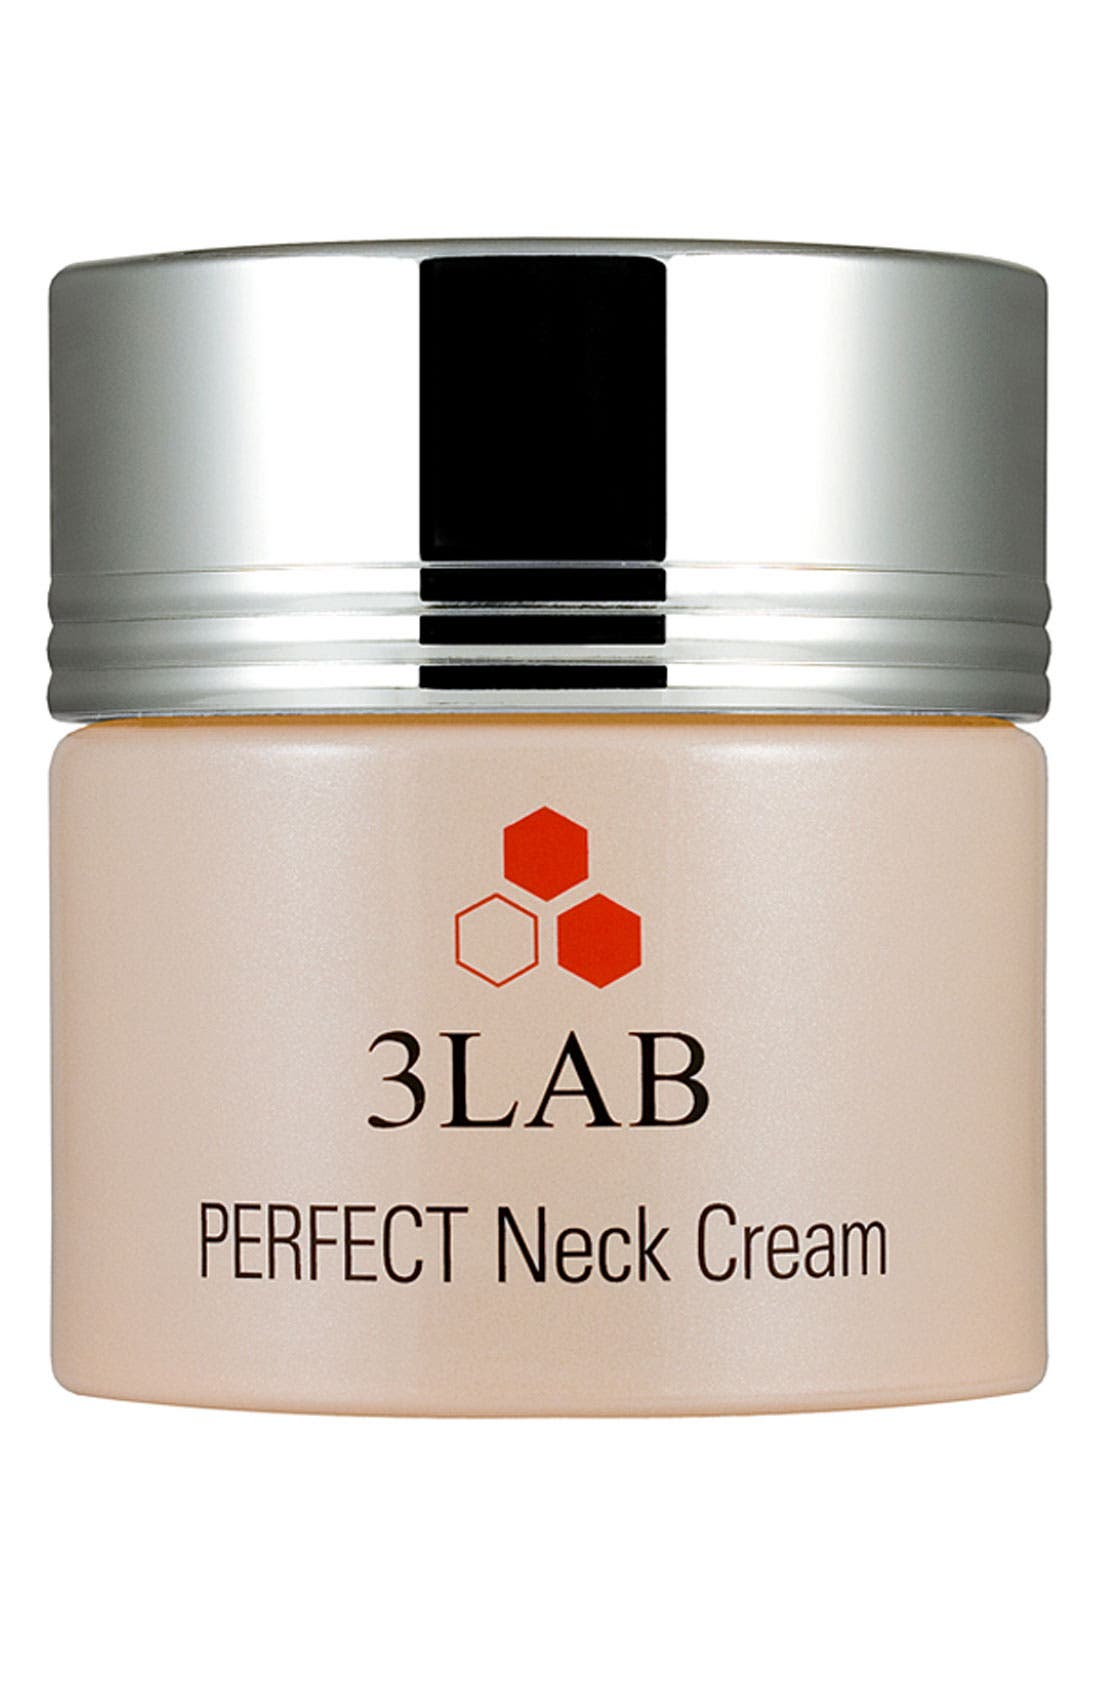 3LAB Perfect Neck Cream